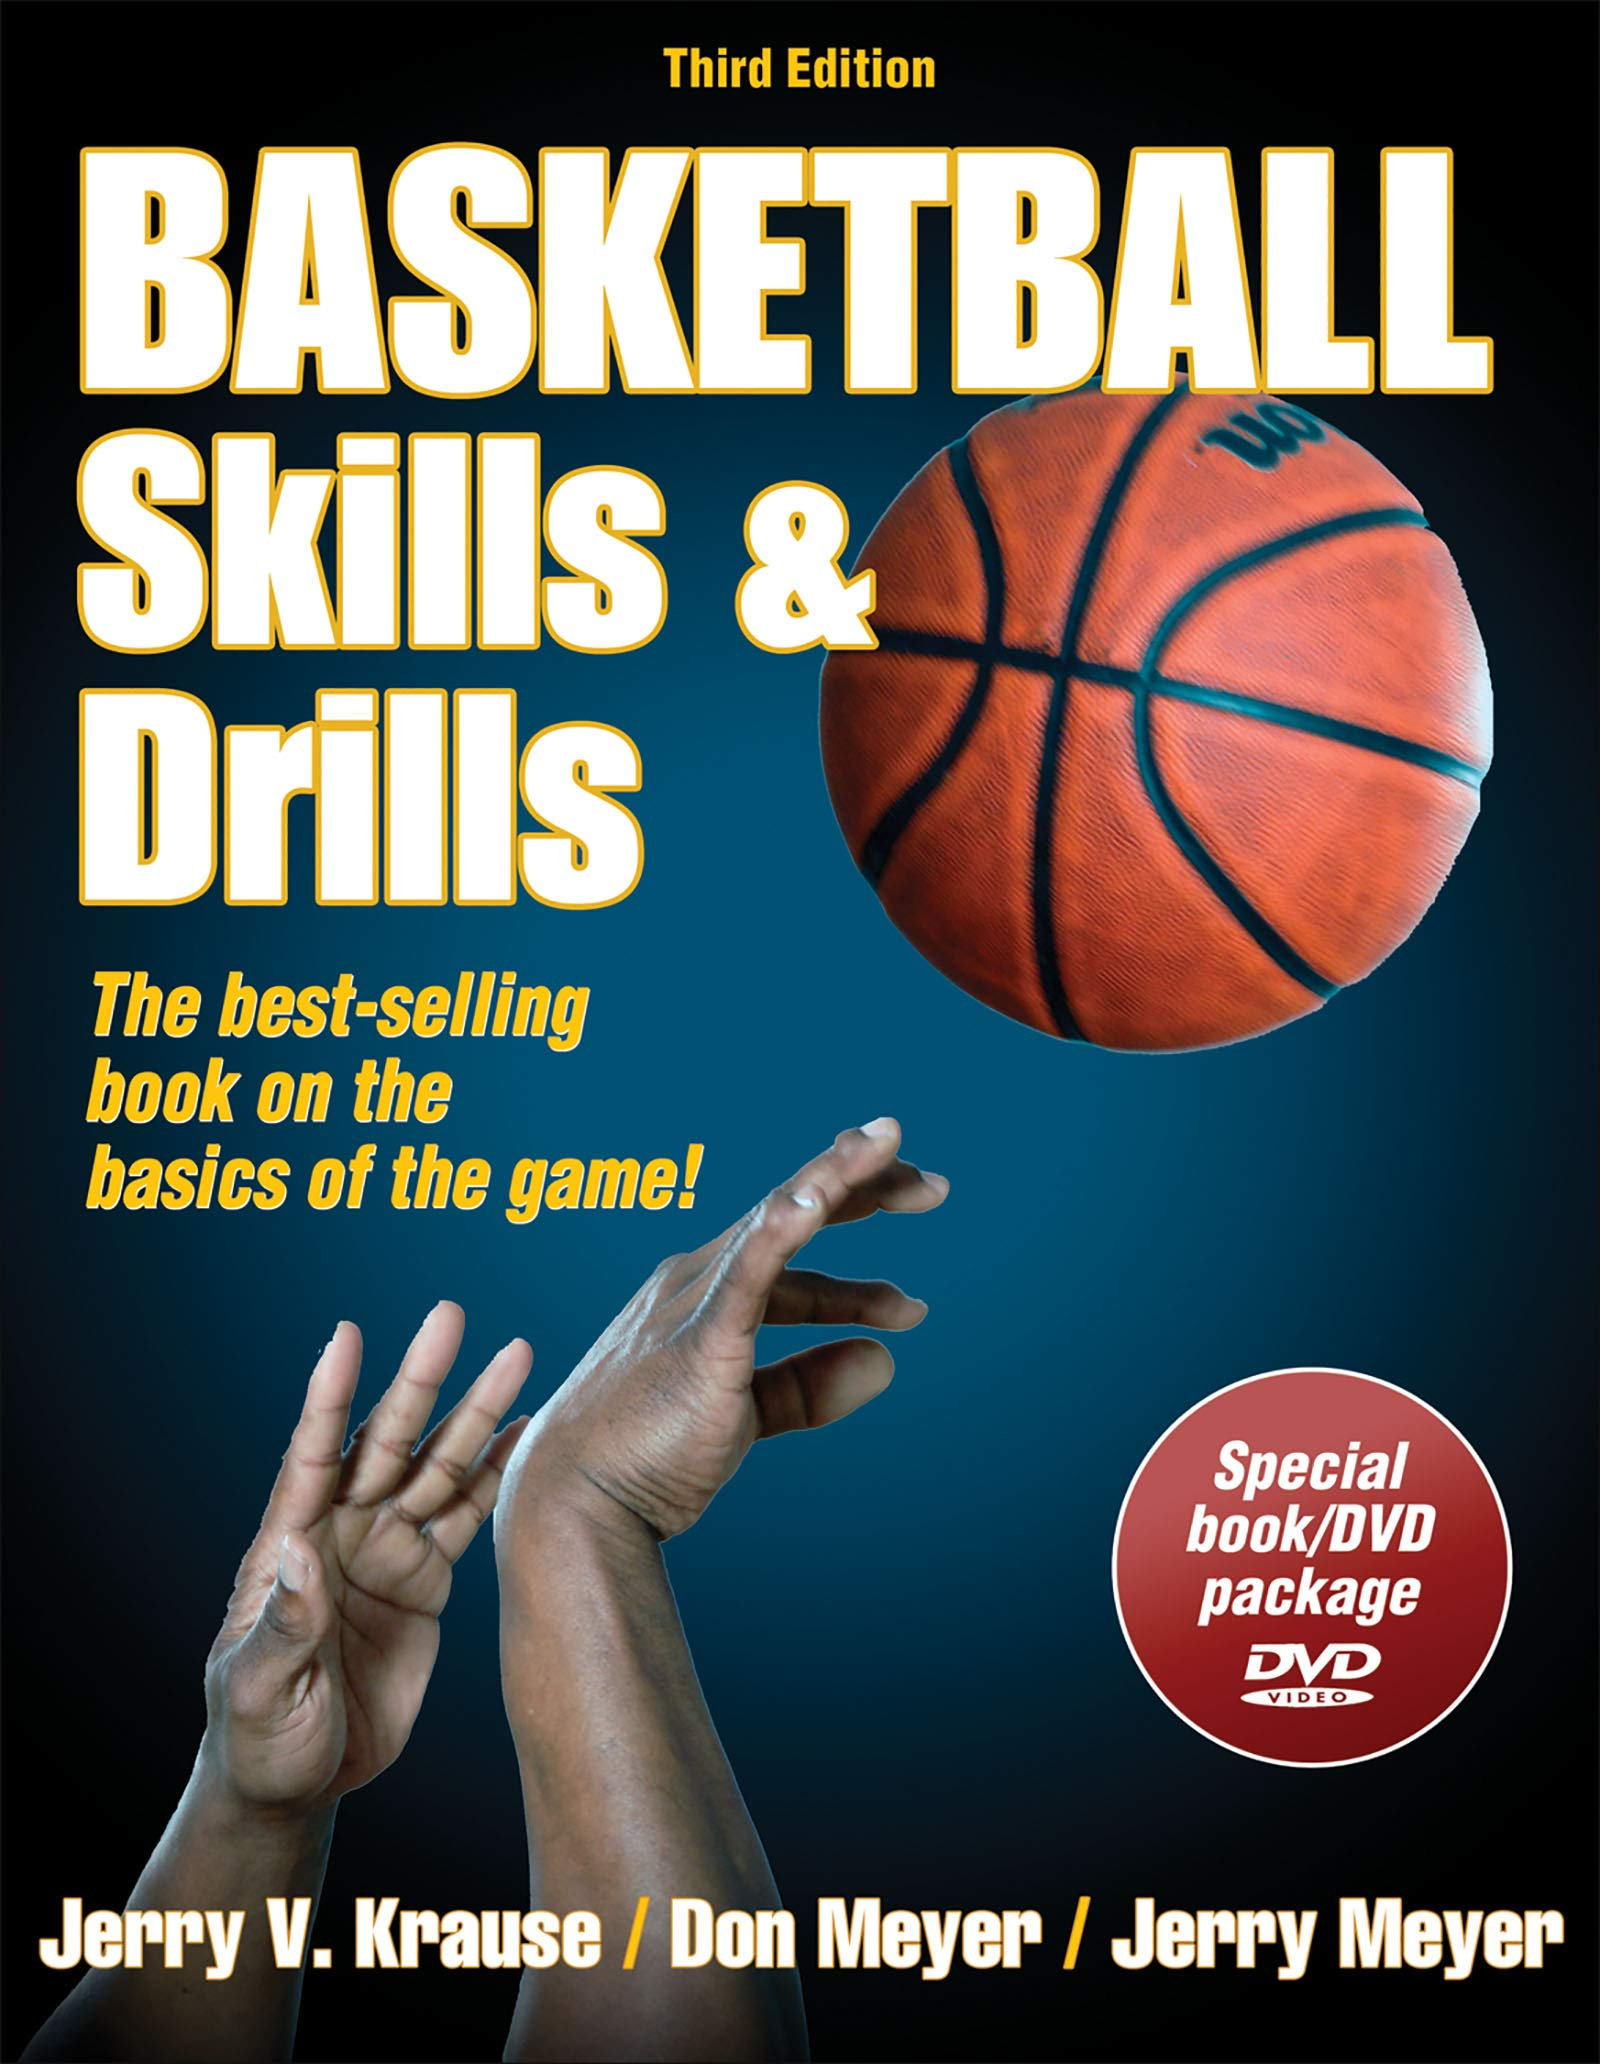 Image OfBasketball Skills & Drills (English Edition)